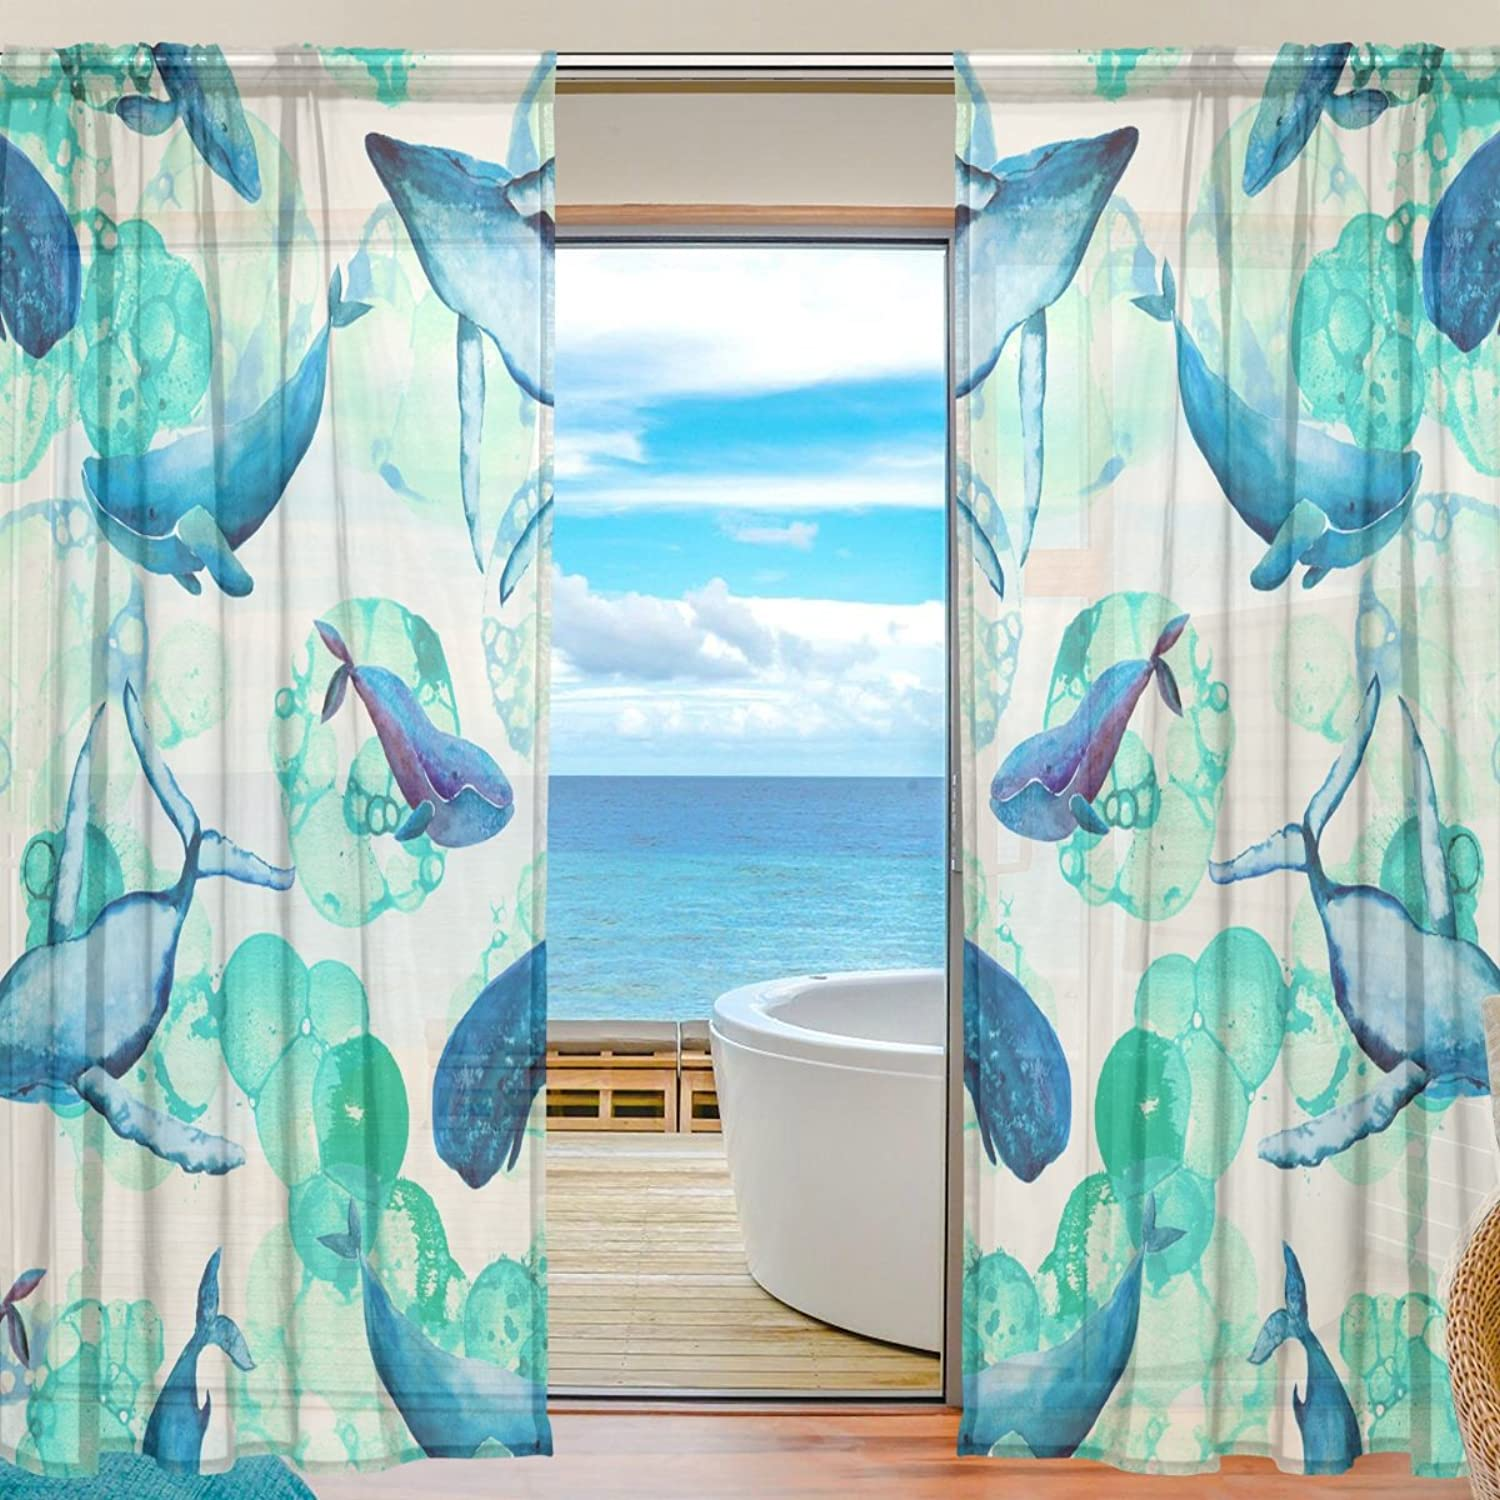 Vantaso Sheer Curtains 78 inch bluee Dolphin Green for Kids Girls Bedroom Living Room Window Decorative 2 Panels